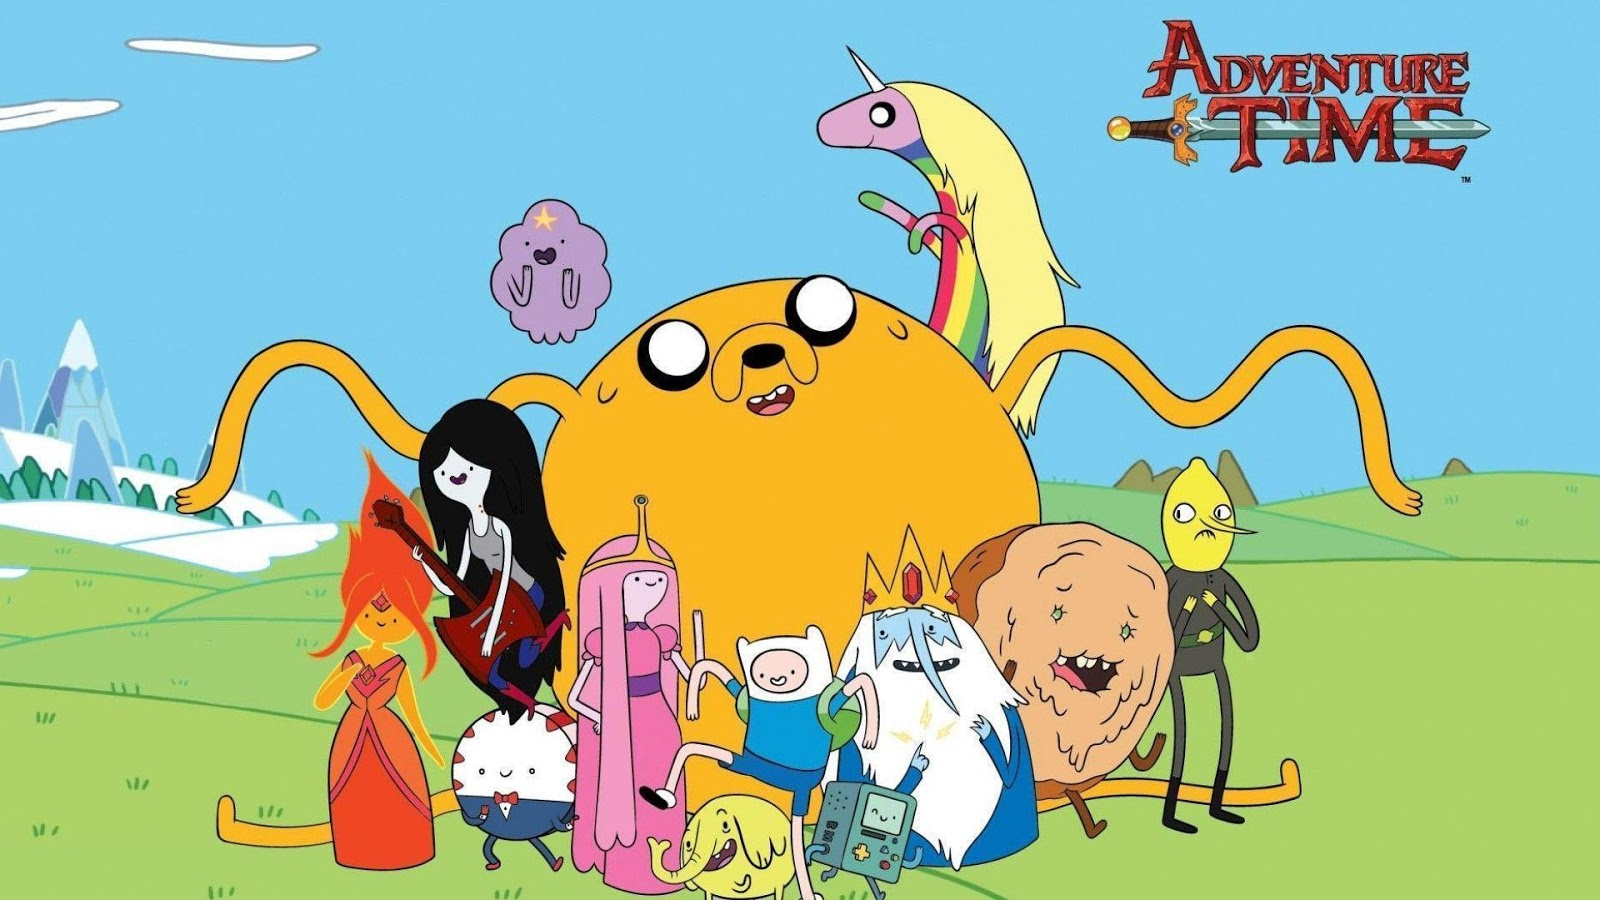 Adventure Time Widescreen Wallpapers 10 Wallpapers